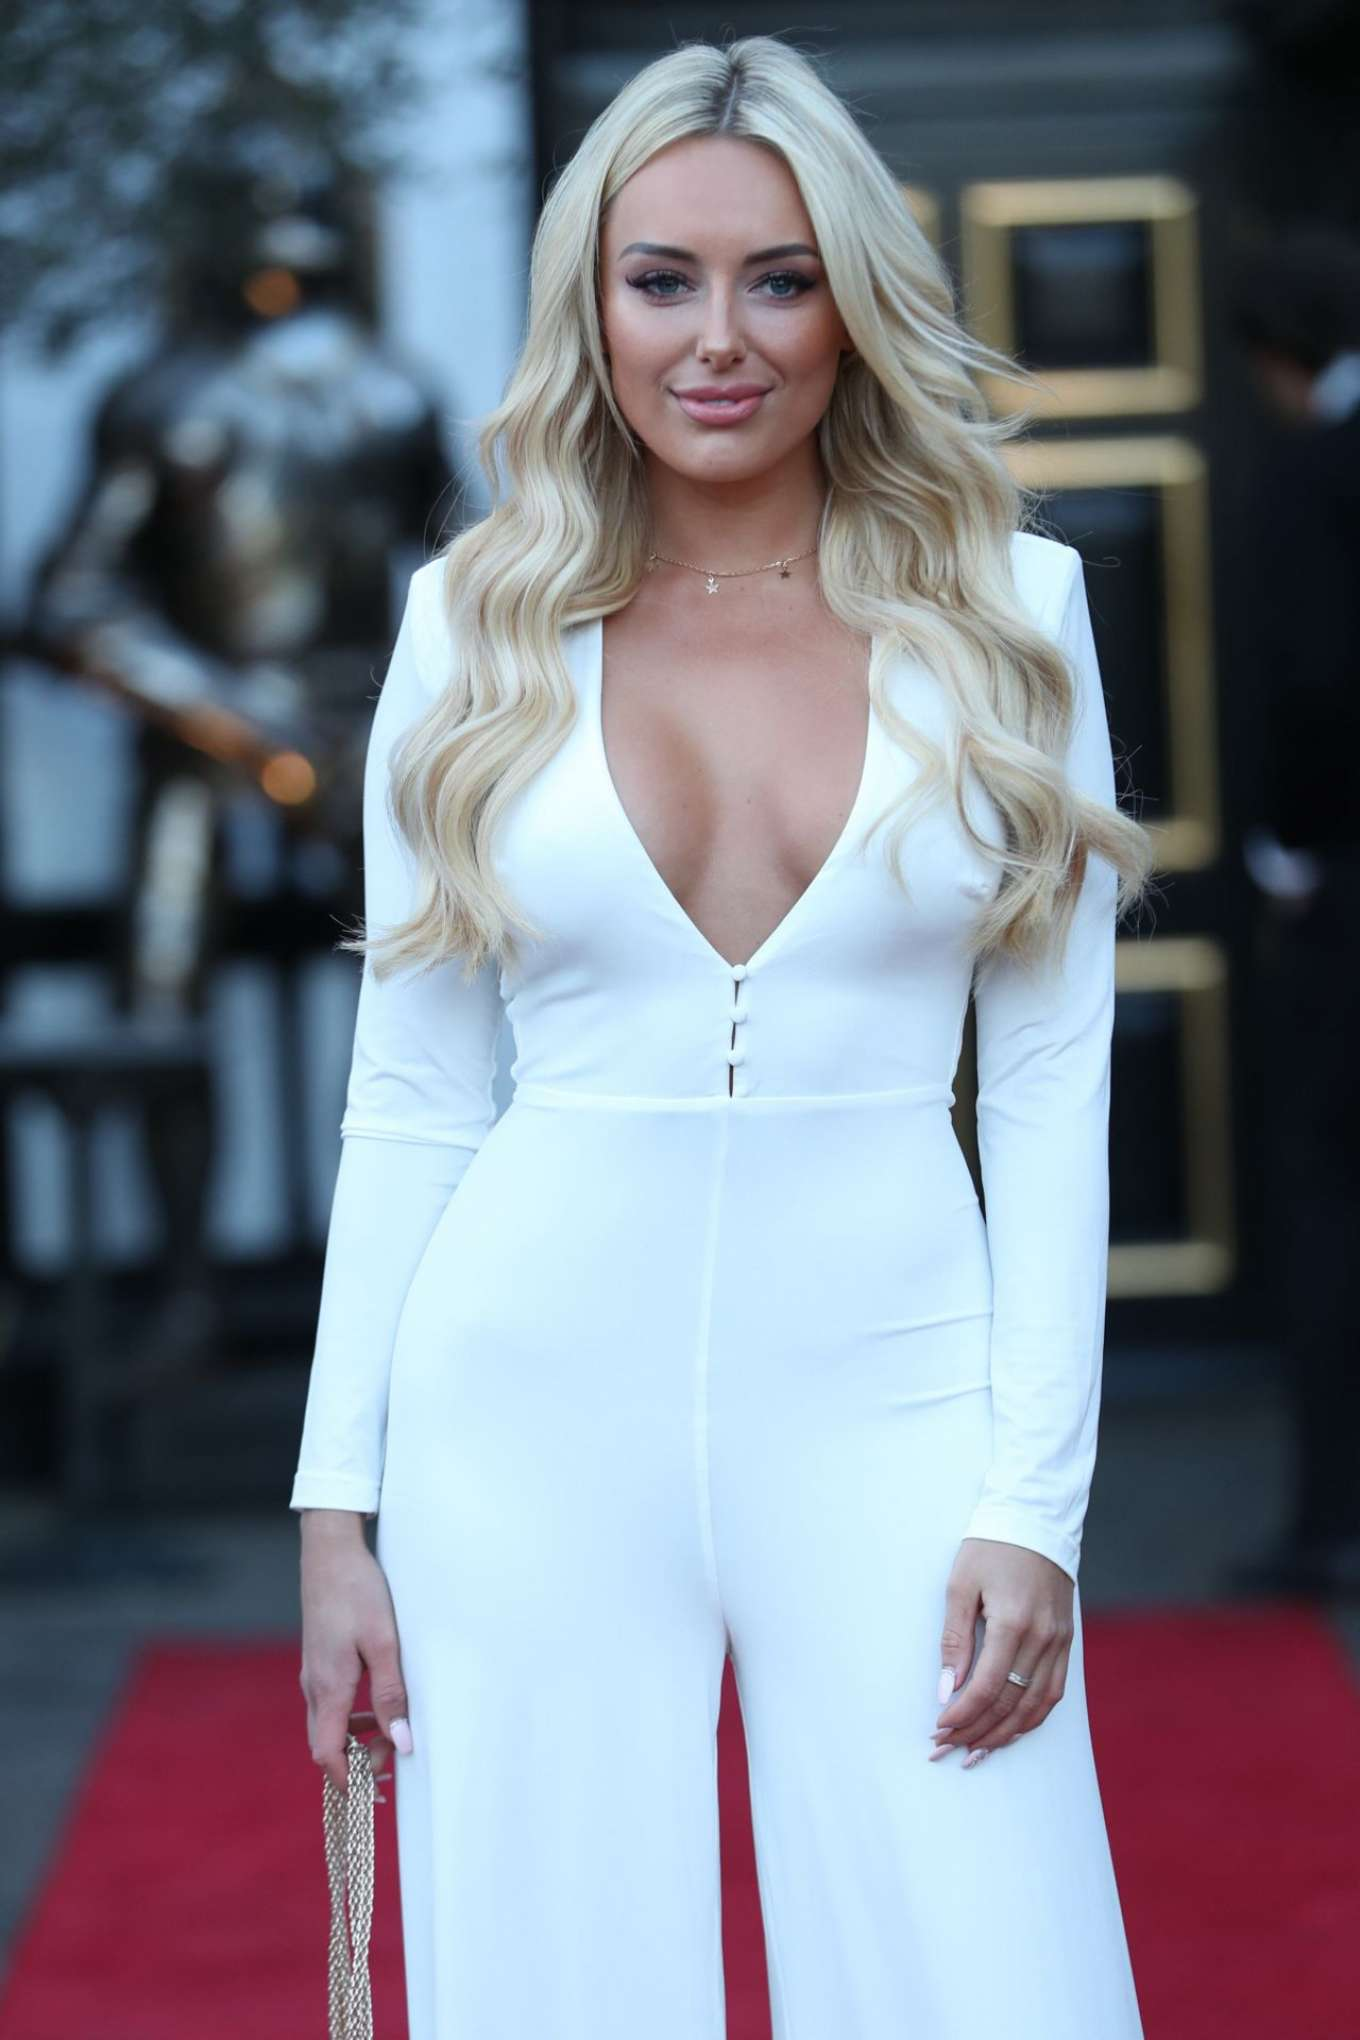 Amber Turner - 'The Only Way Is Essex' Premiere in Chigwell